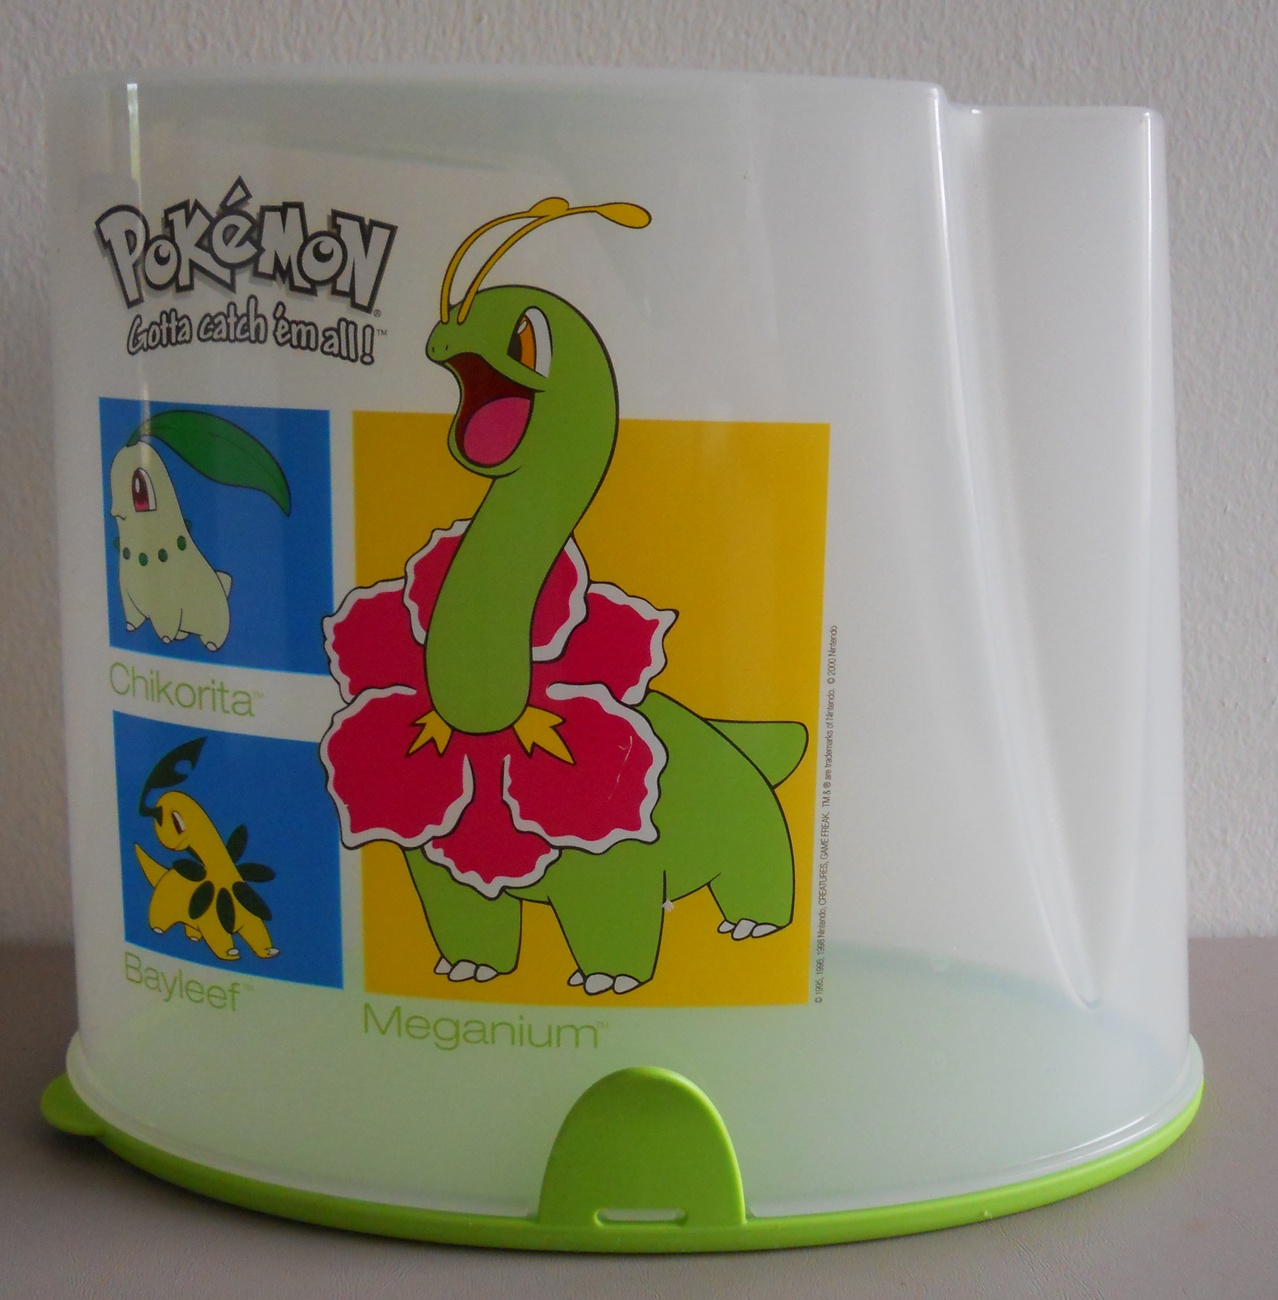 Retired_pokemon_tupperware_cereal_keeper_pantry_meganium_bayleef_chikorita